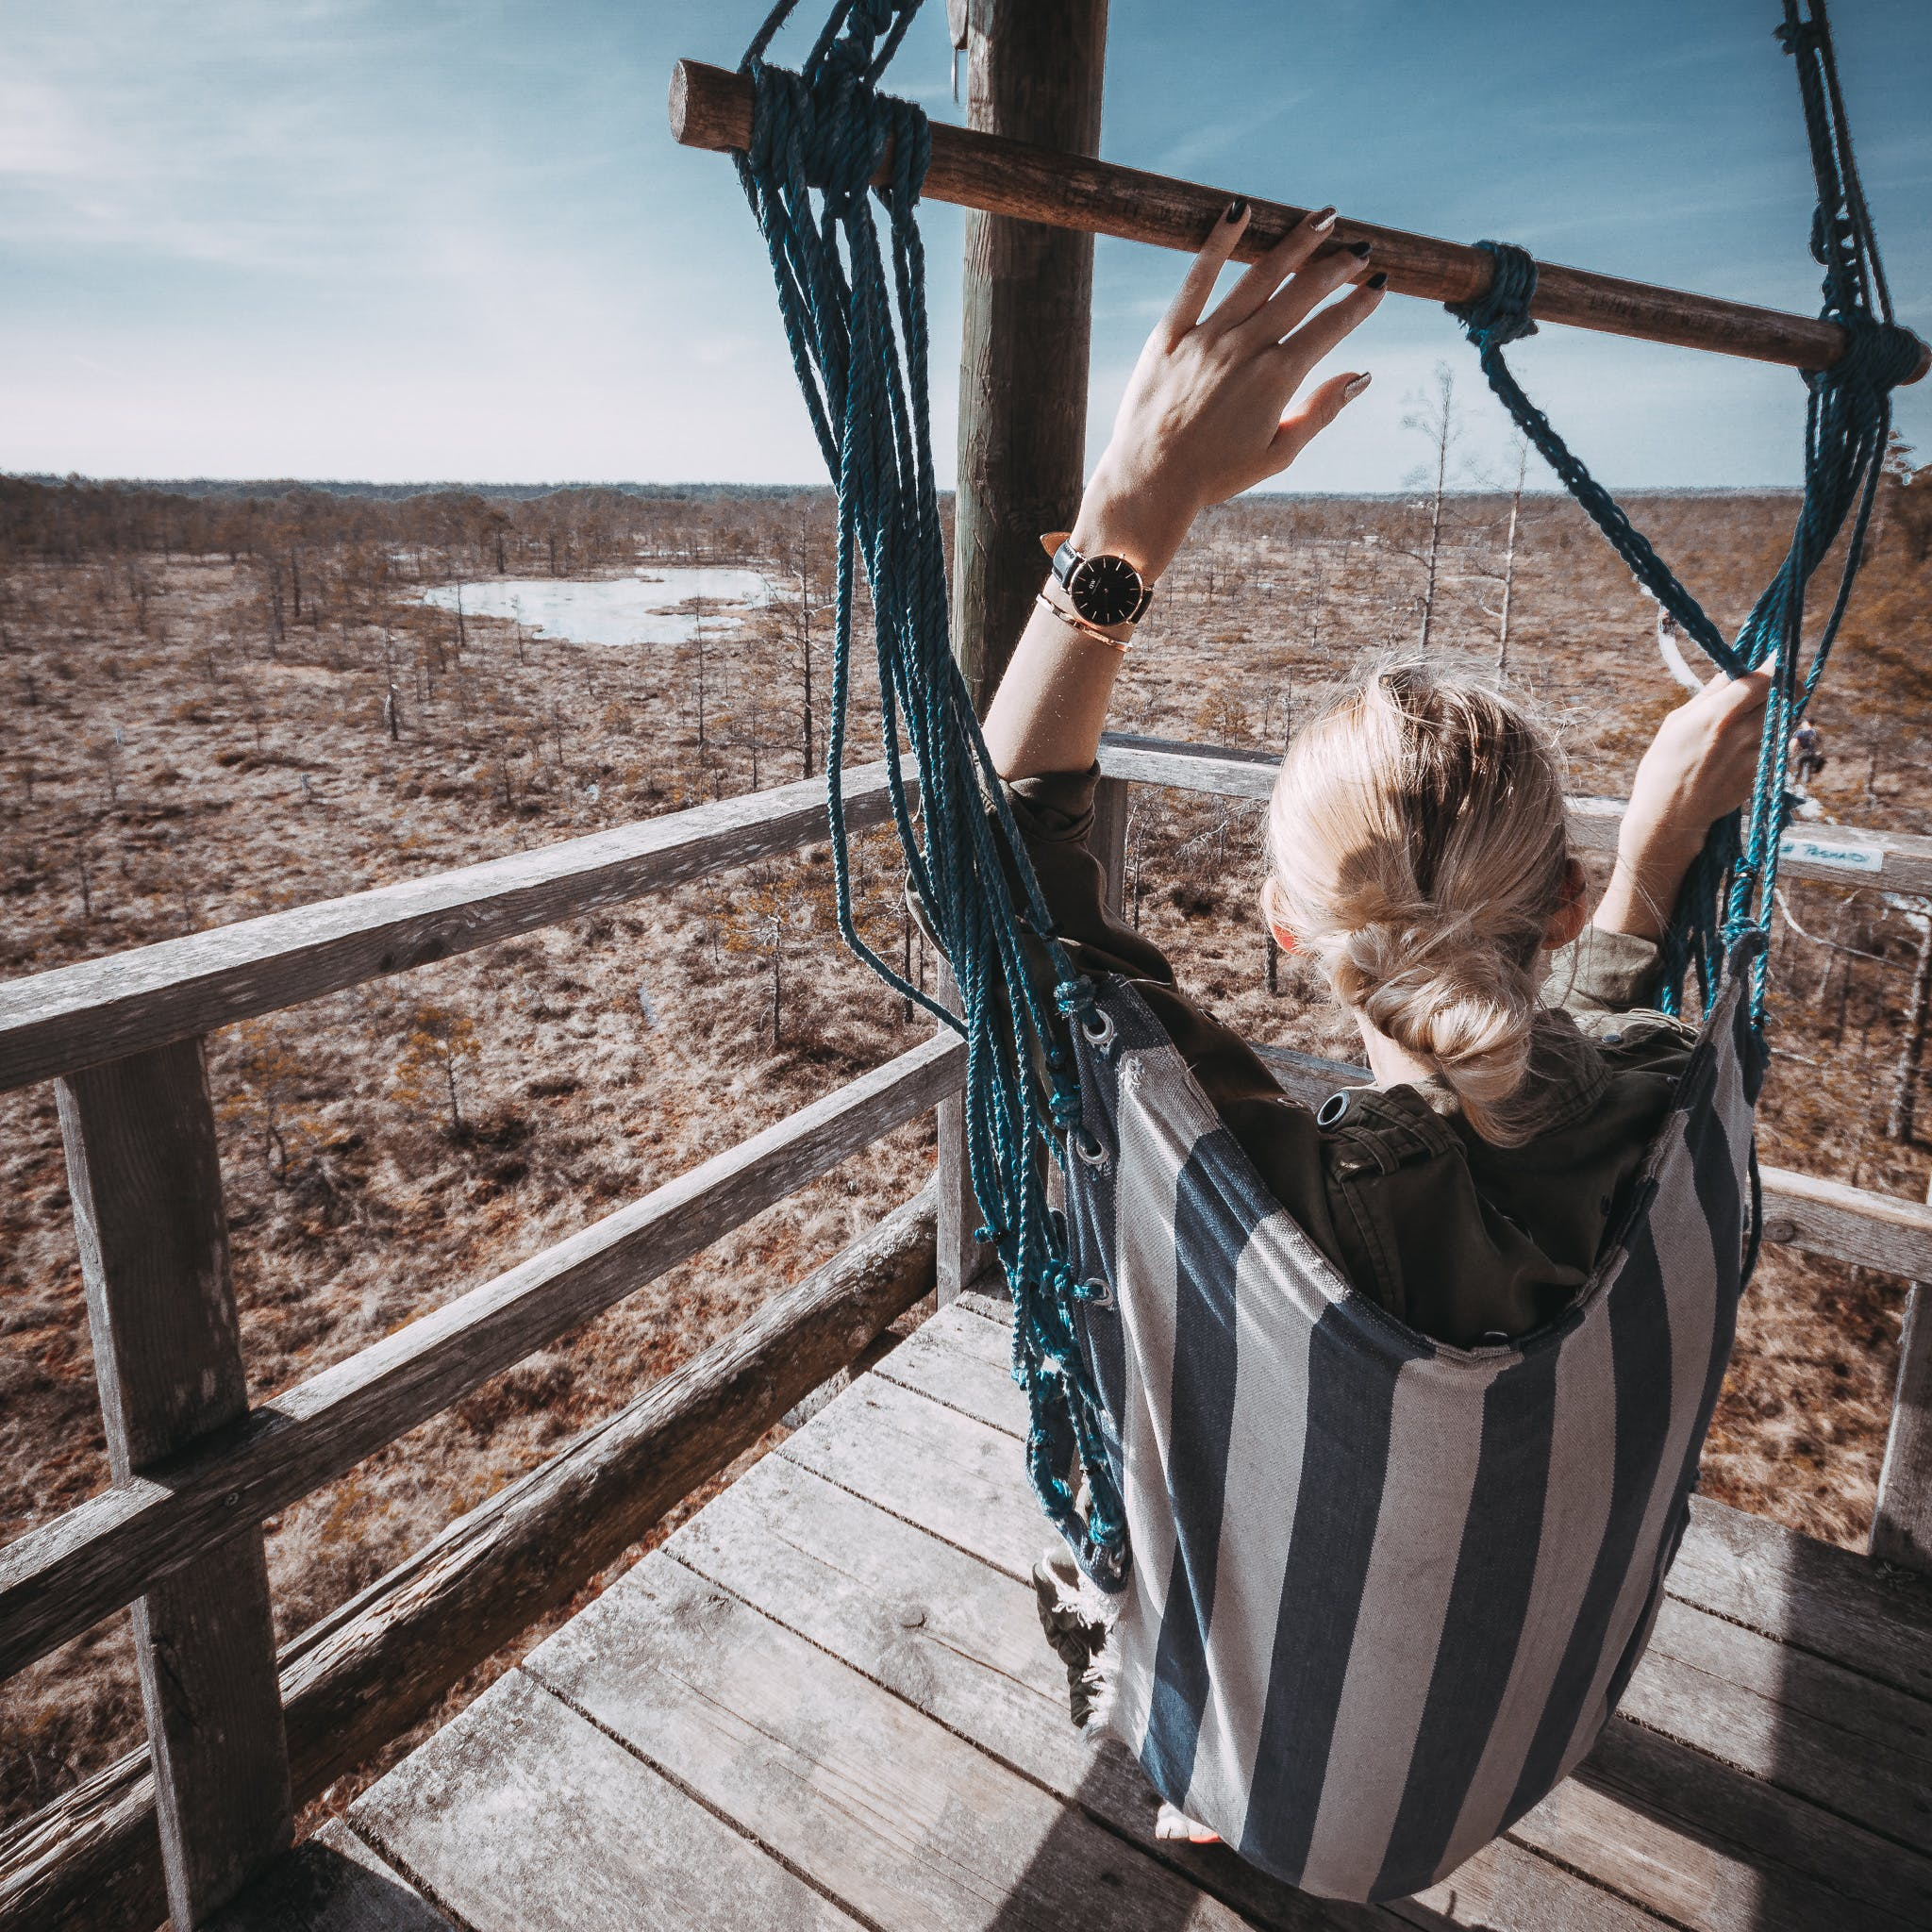 Woman With Blonde Hair On Blue And White Striped Hammock